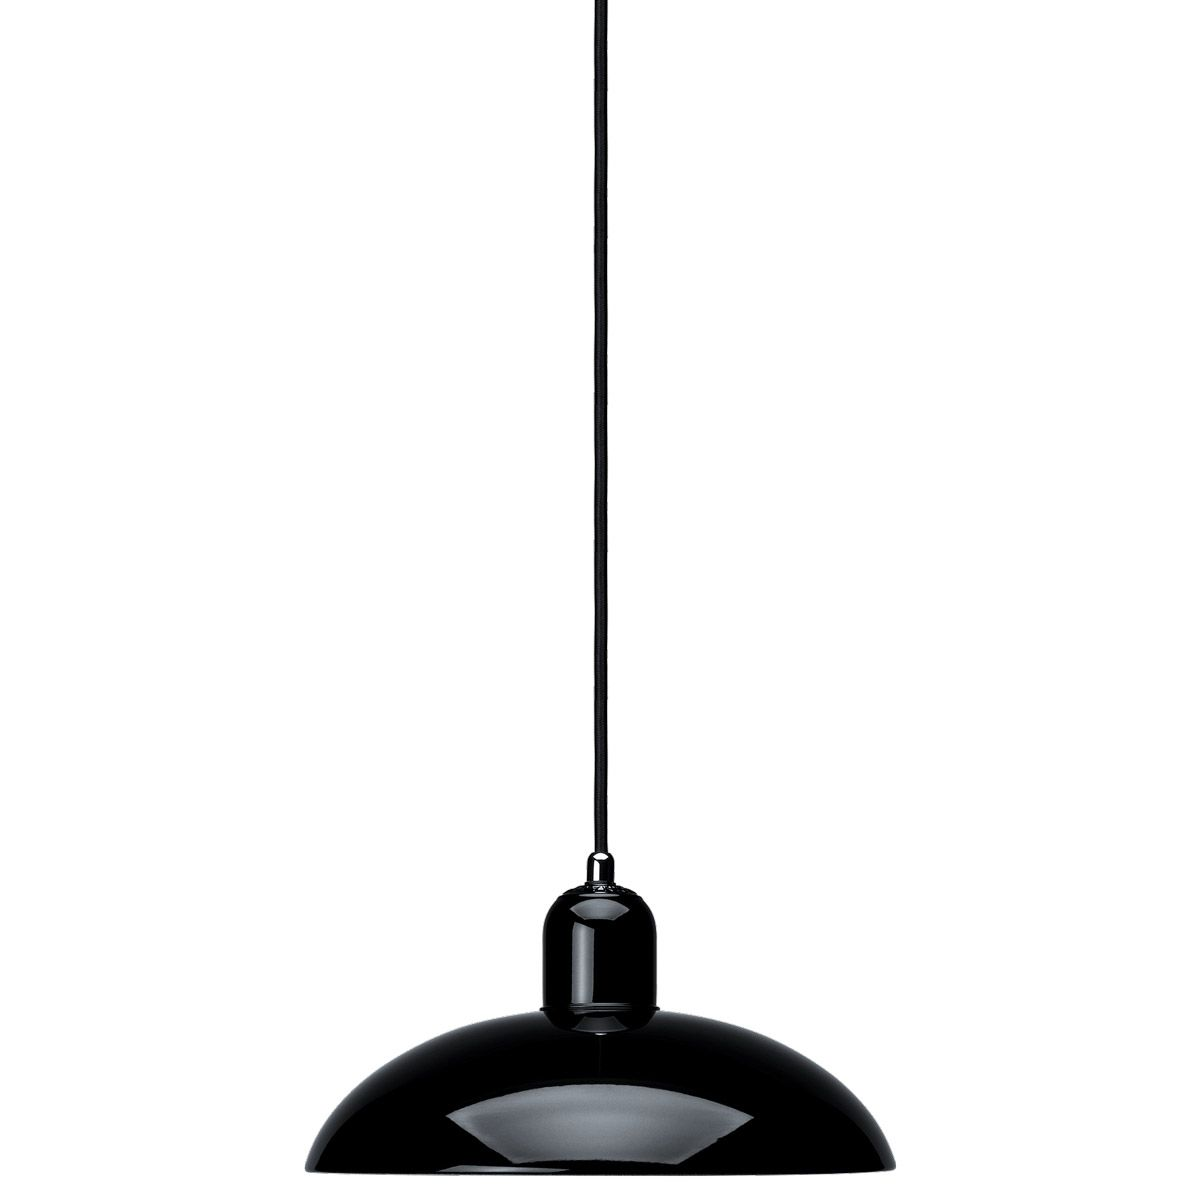 Lamp Kaiser Idell 6631P Black by Christian Dell edited by Light Years